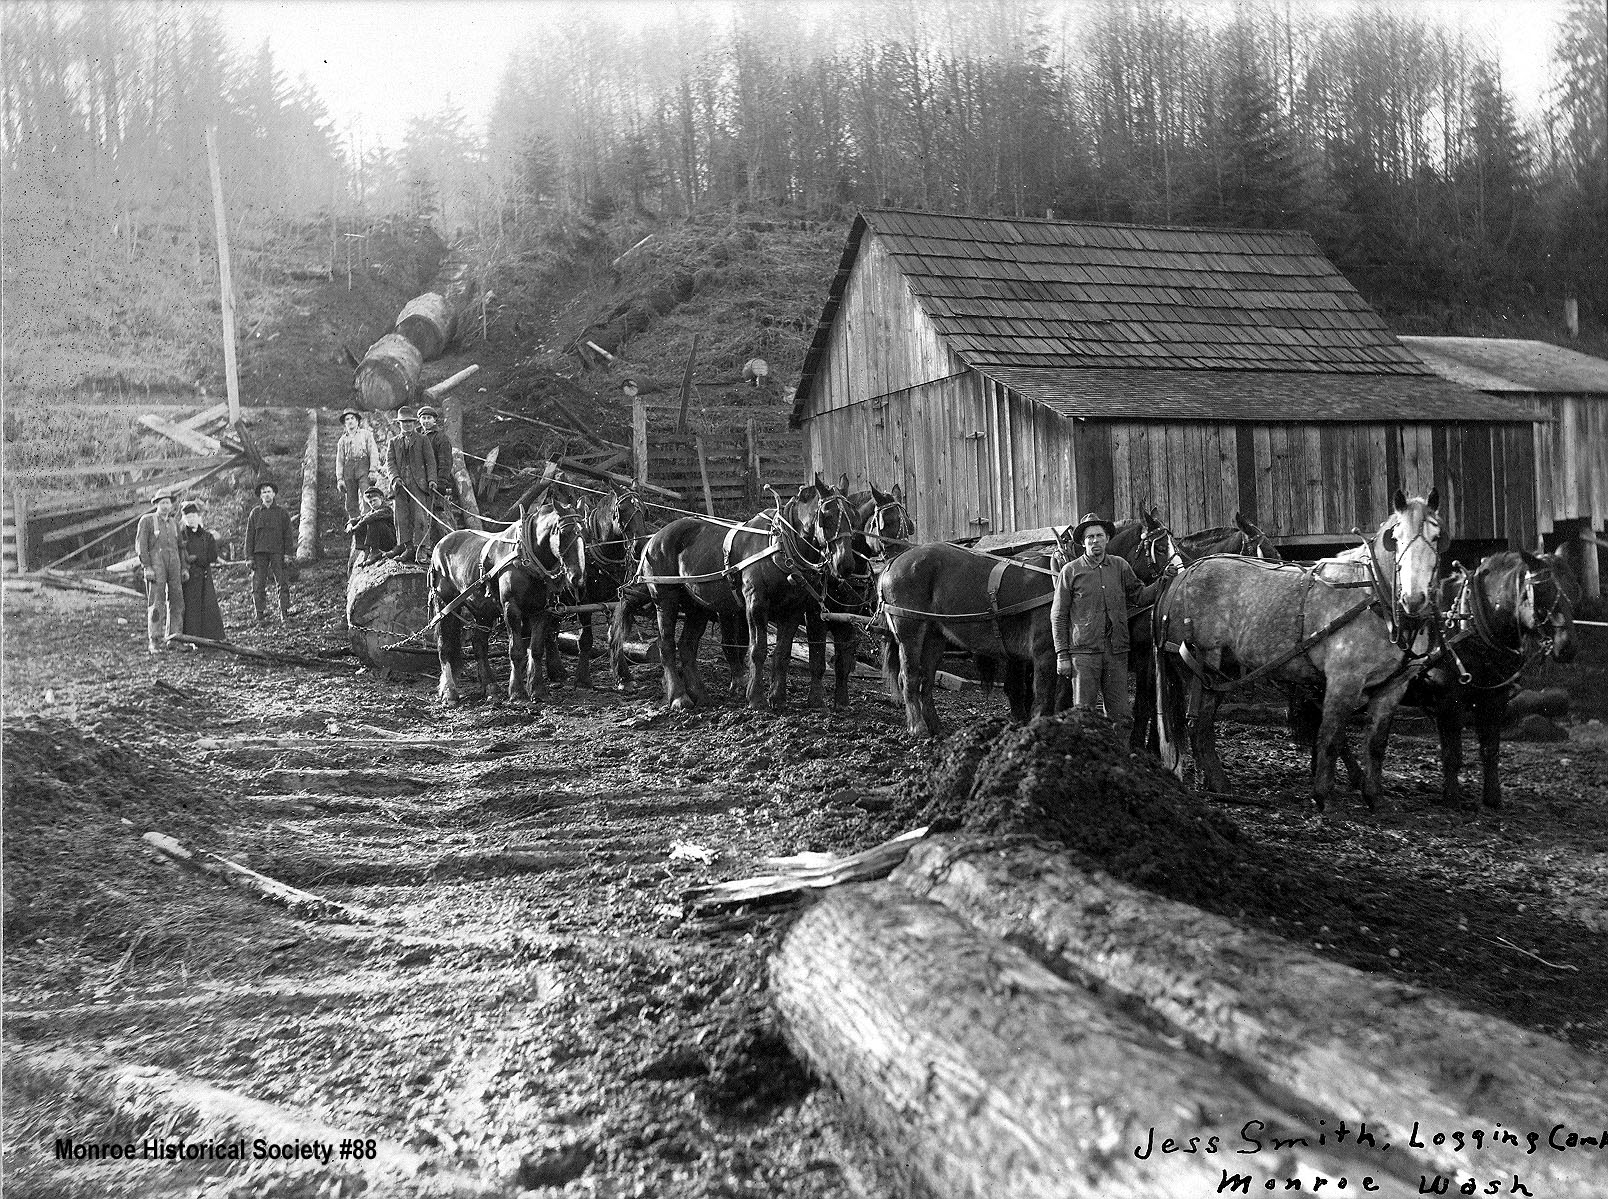 0088 – Jess Smith Logging Camp south of Monroe in 1915 with horse team and skid row